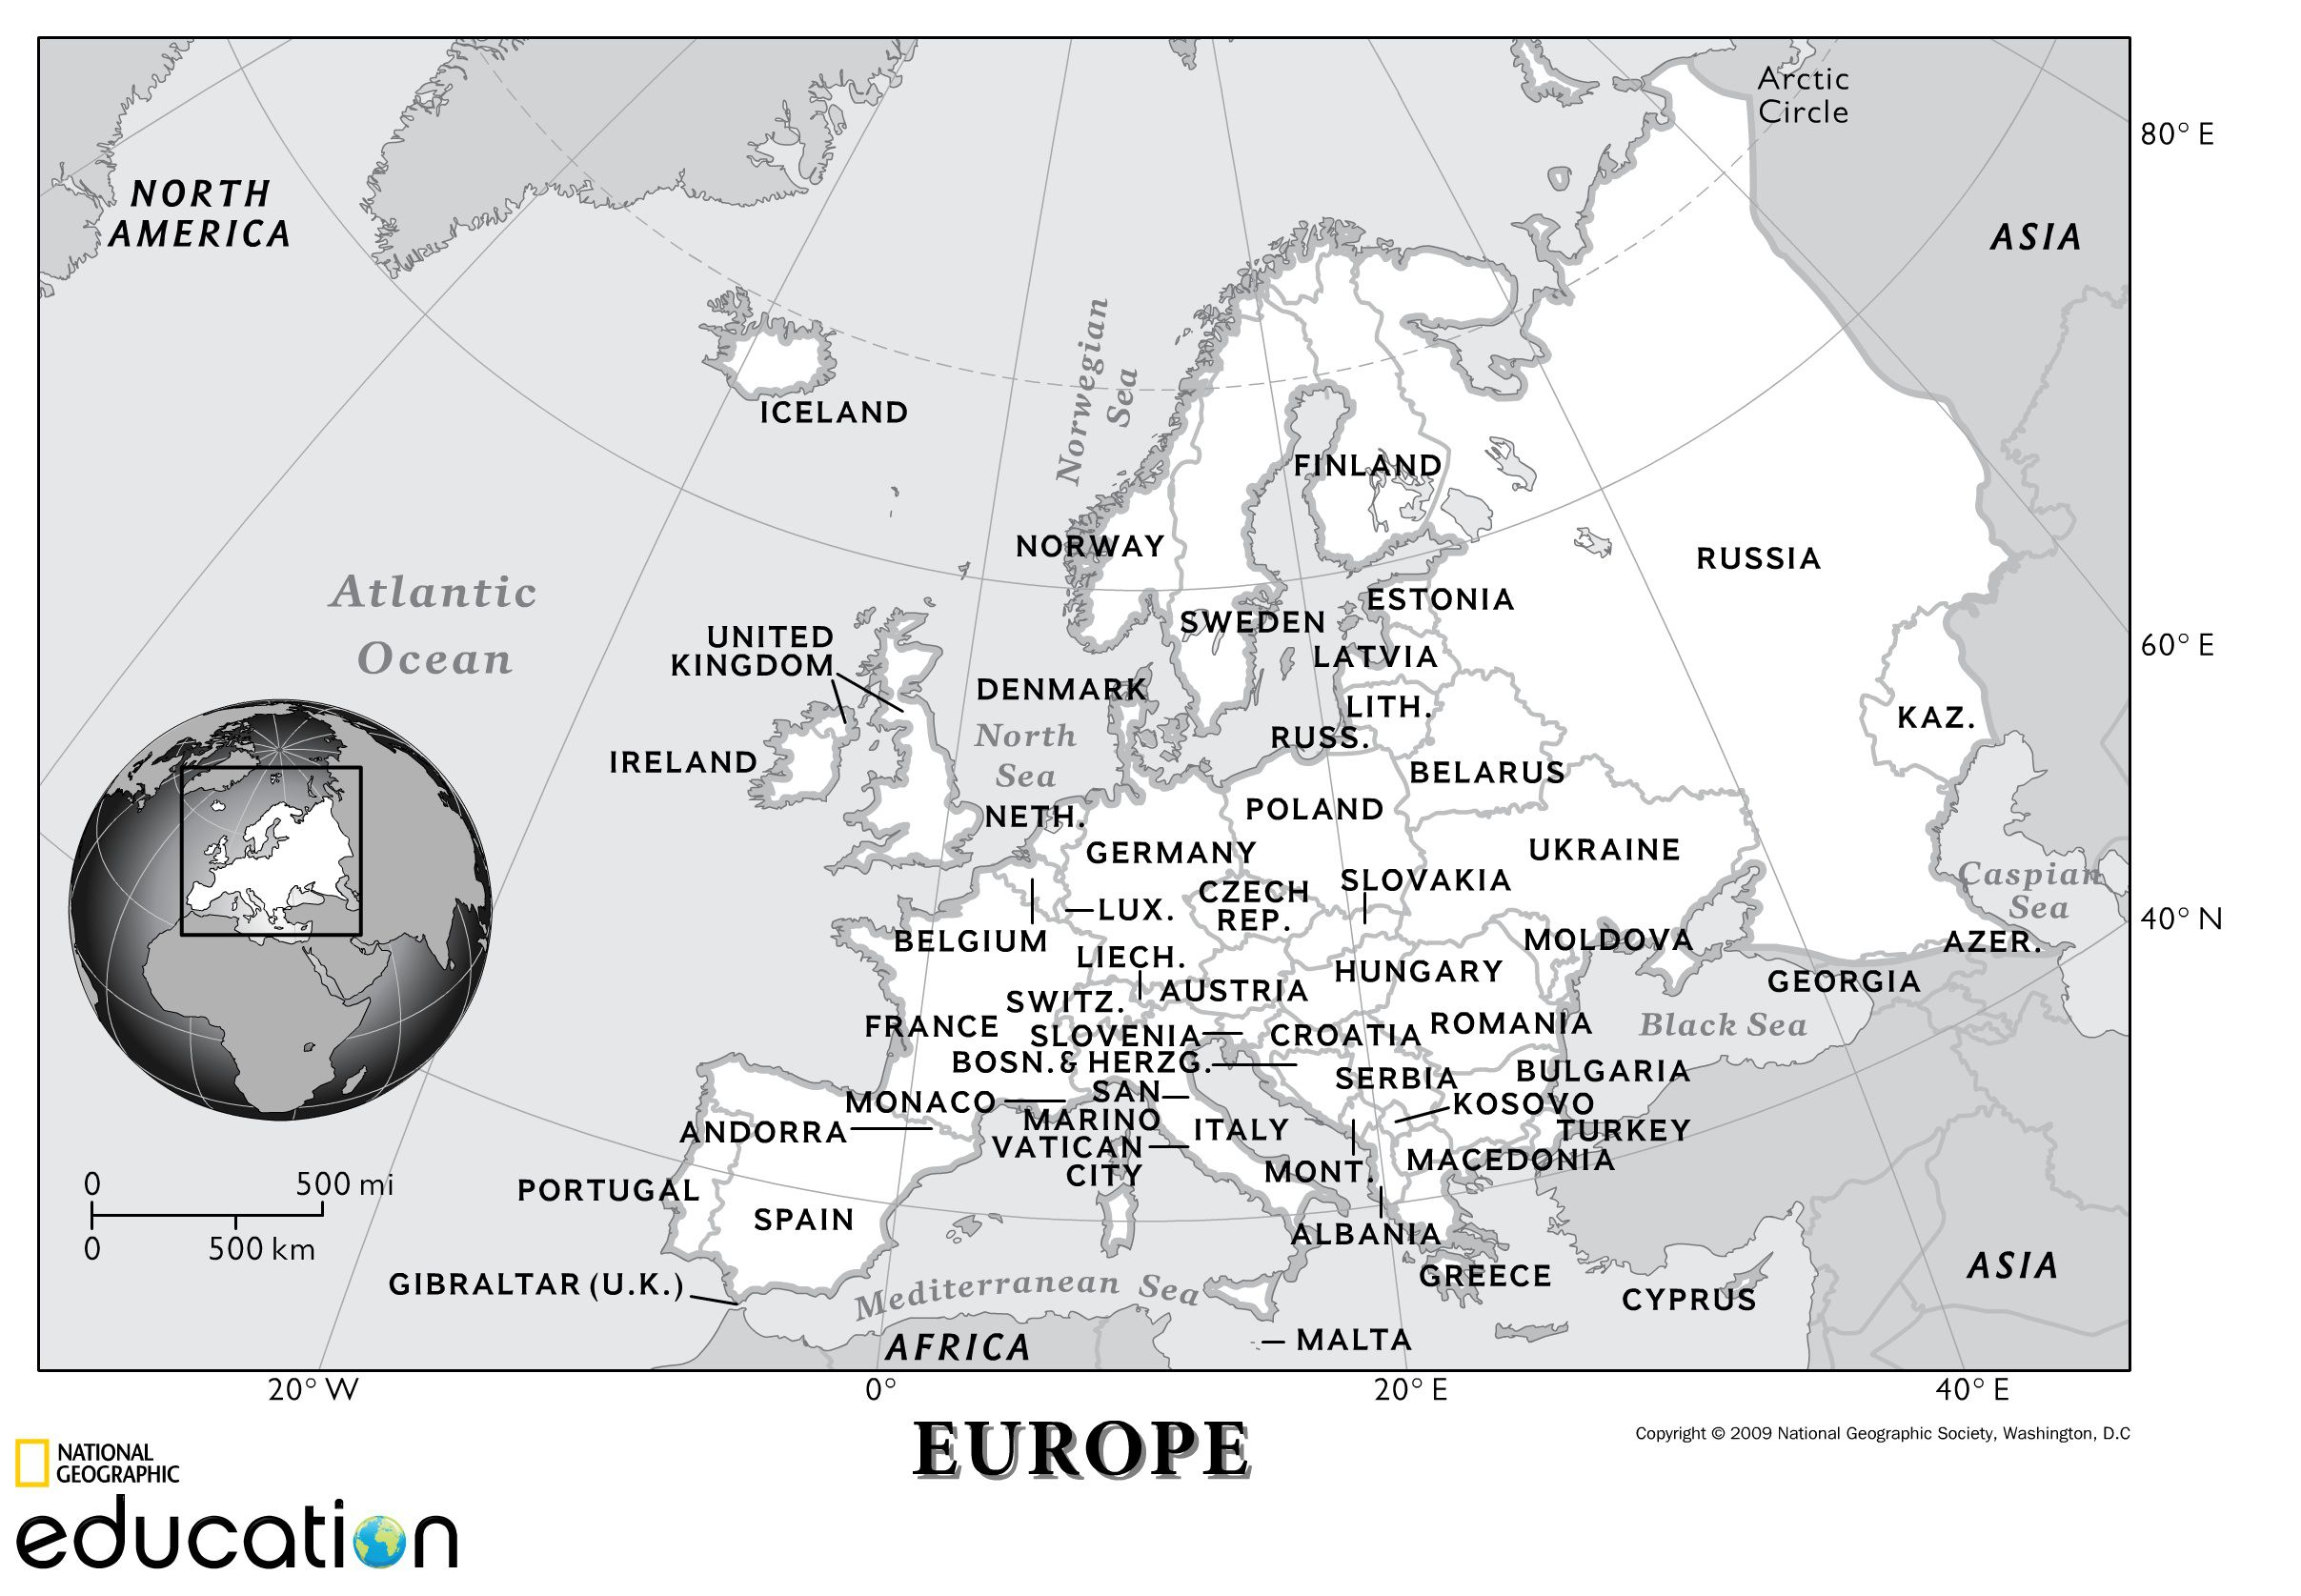 Geography Geographic Human Society National Europe